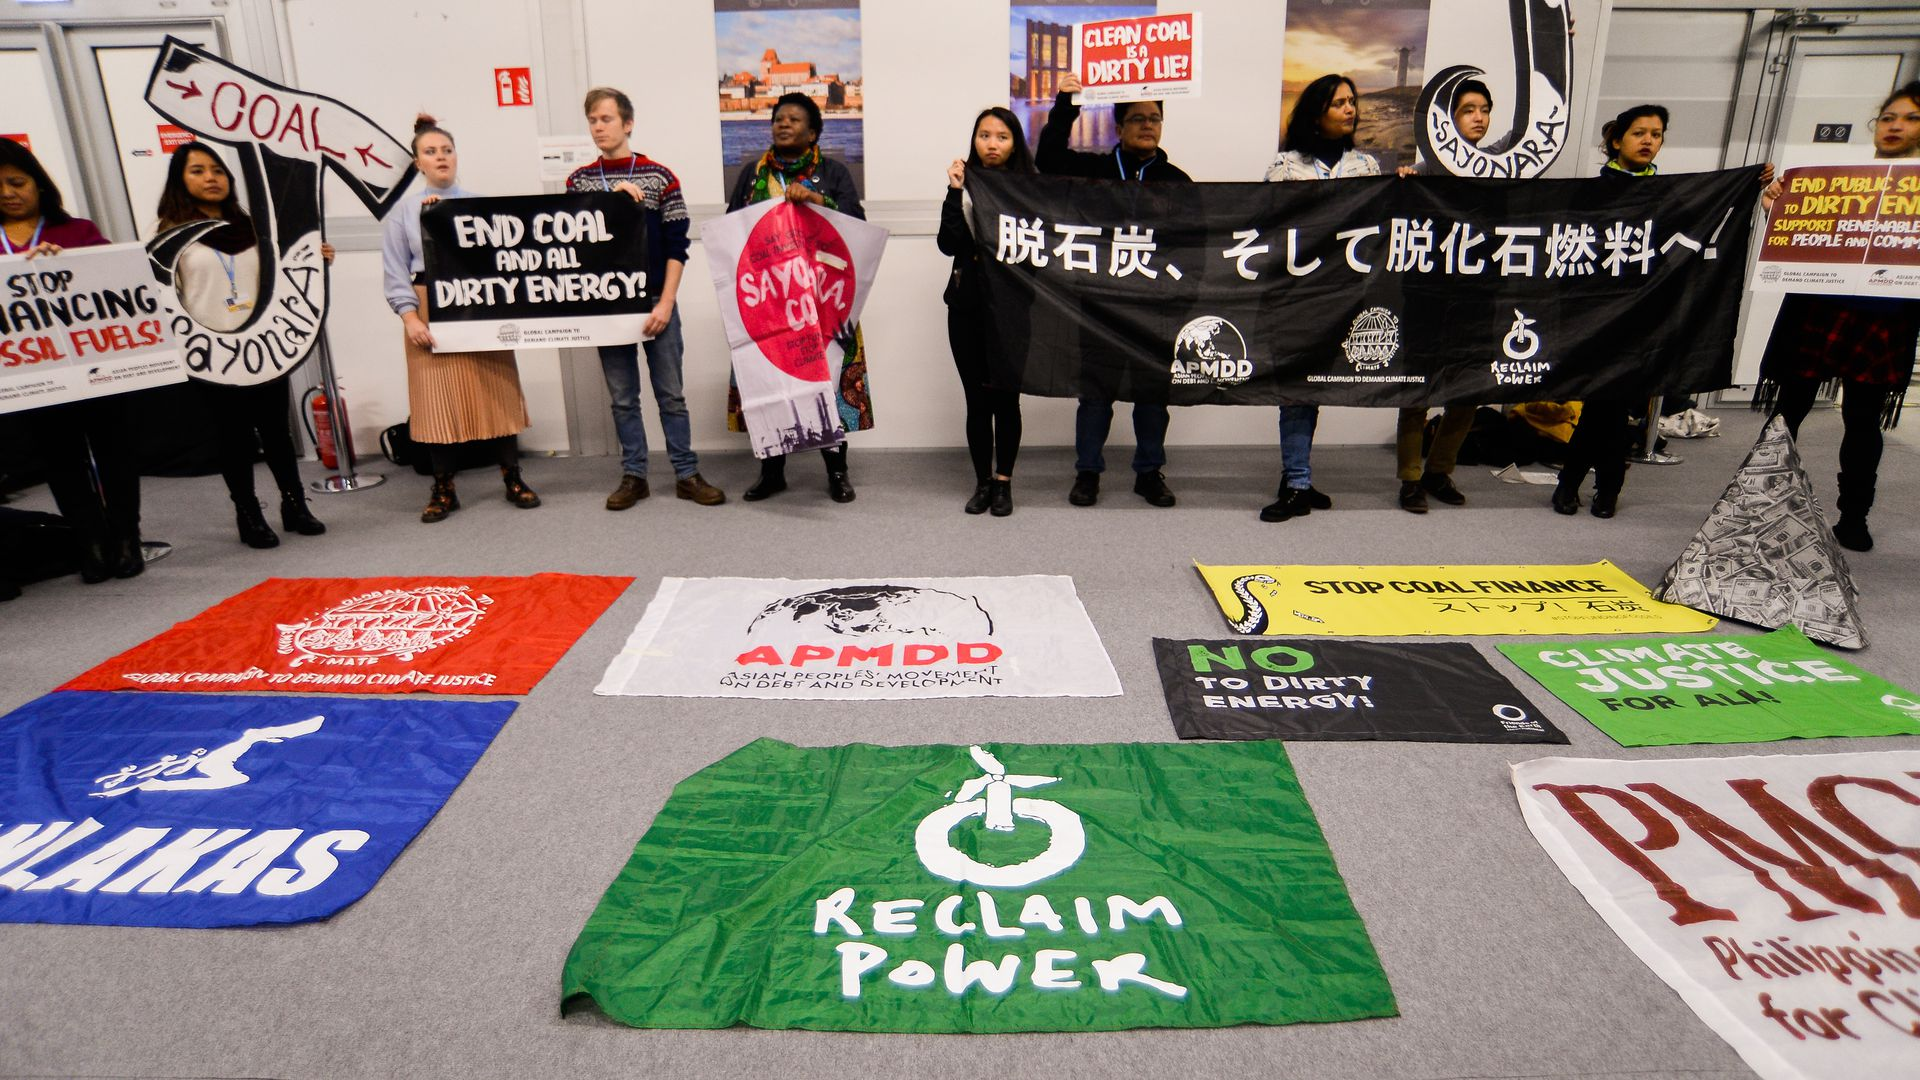 Protestors highlight the divide at a global climate conference around fossil fuels.